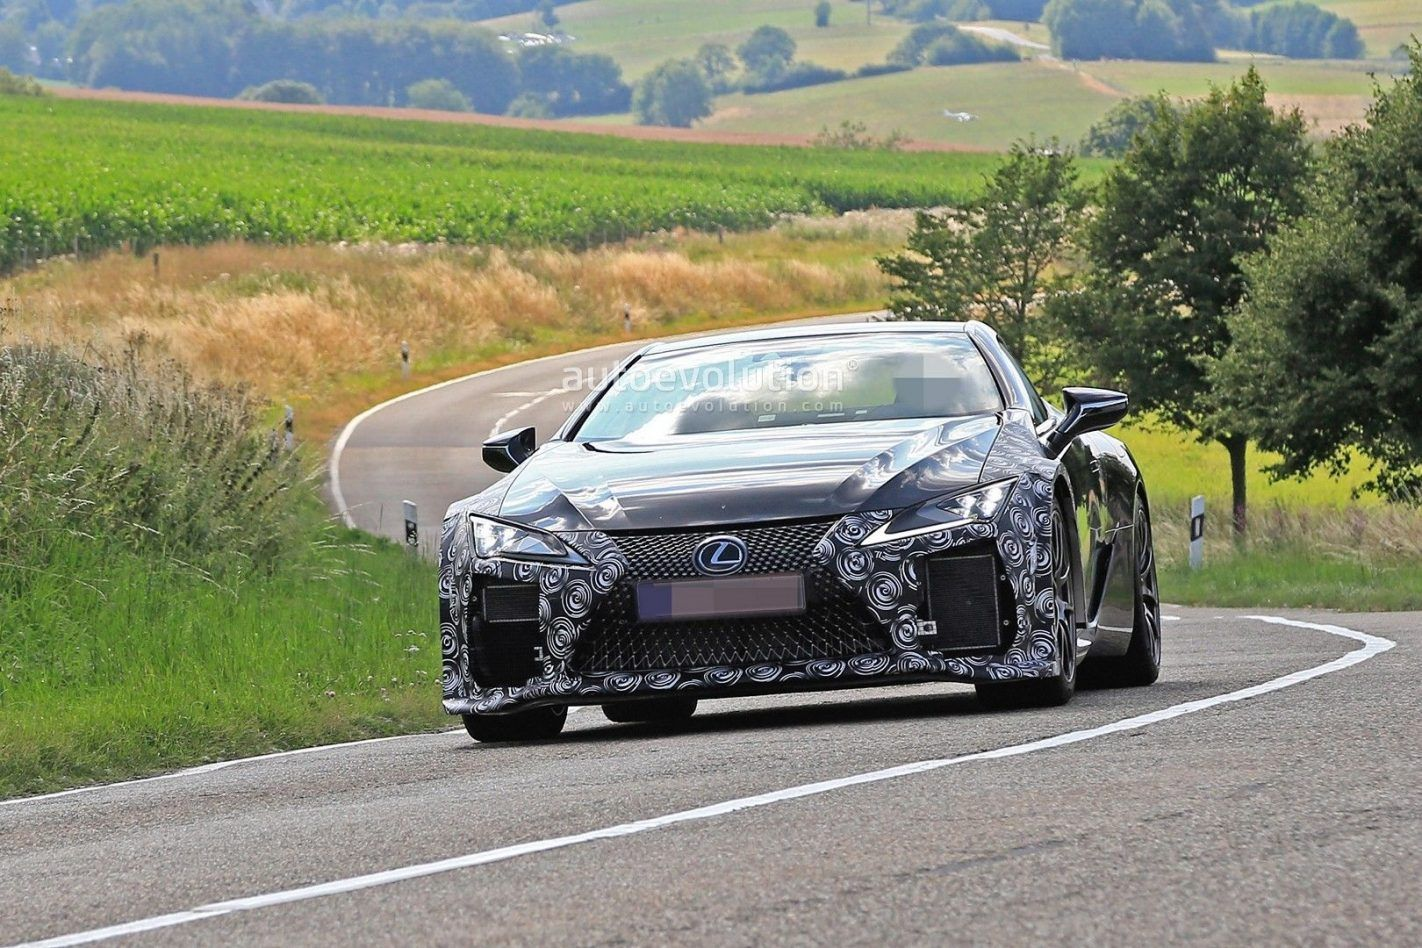 2020 Lexus Es Review Design Pricing Engine Release Date And Photos